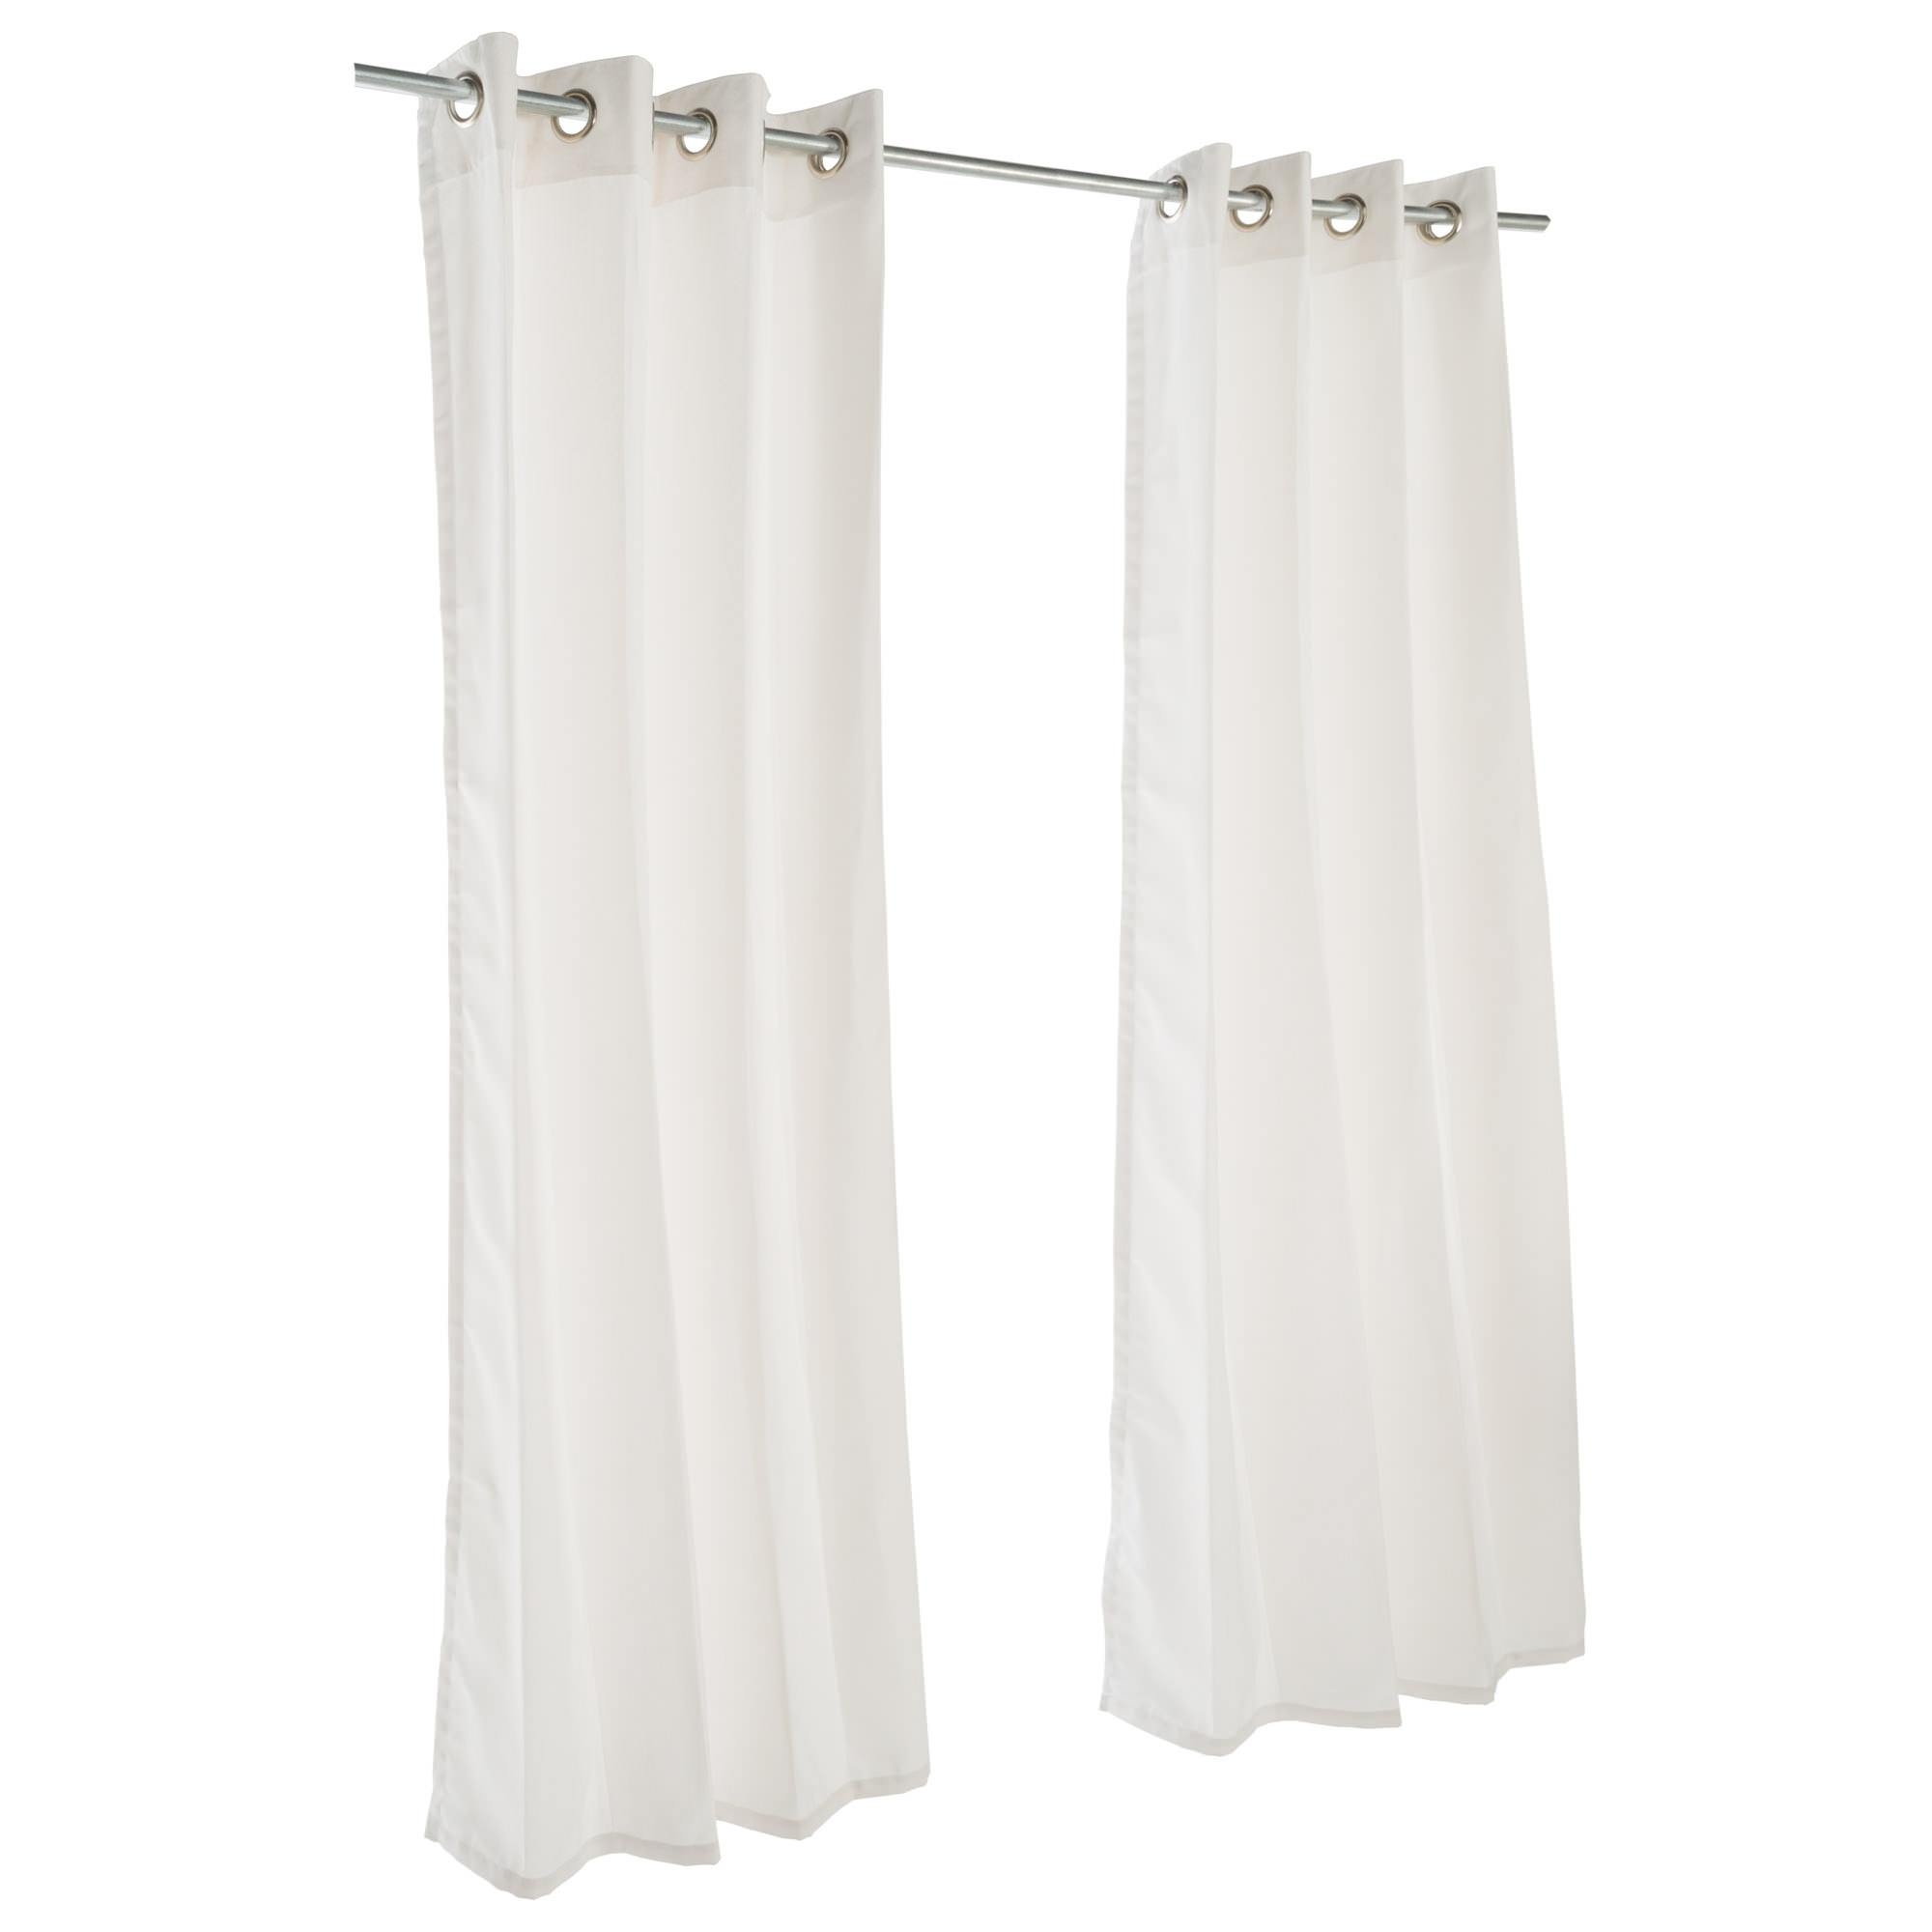 Canvas White Sunbrella Nickel Grommeted Outdoor Curtain by Essentials by DFO